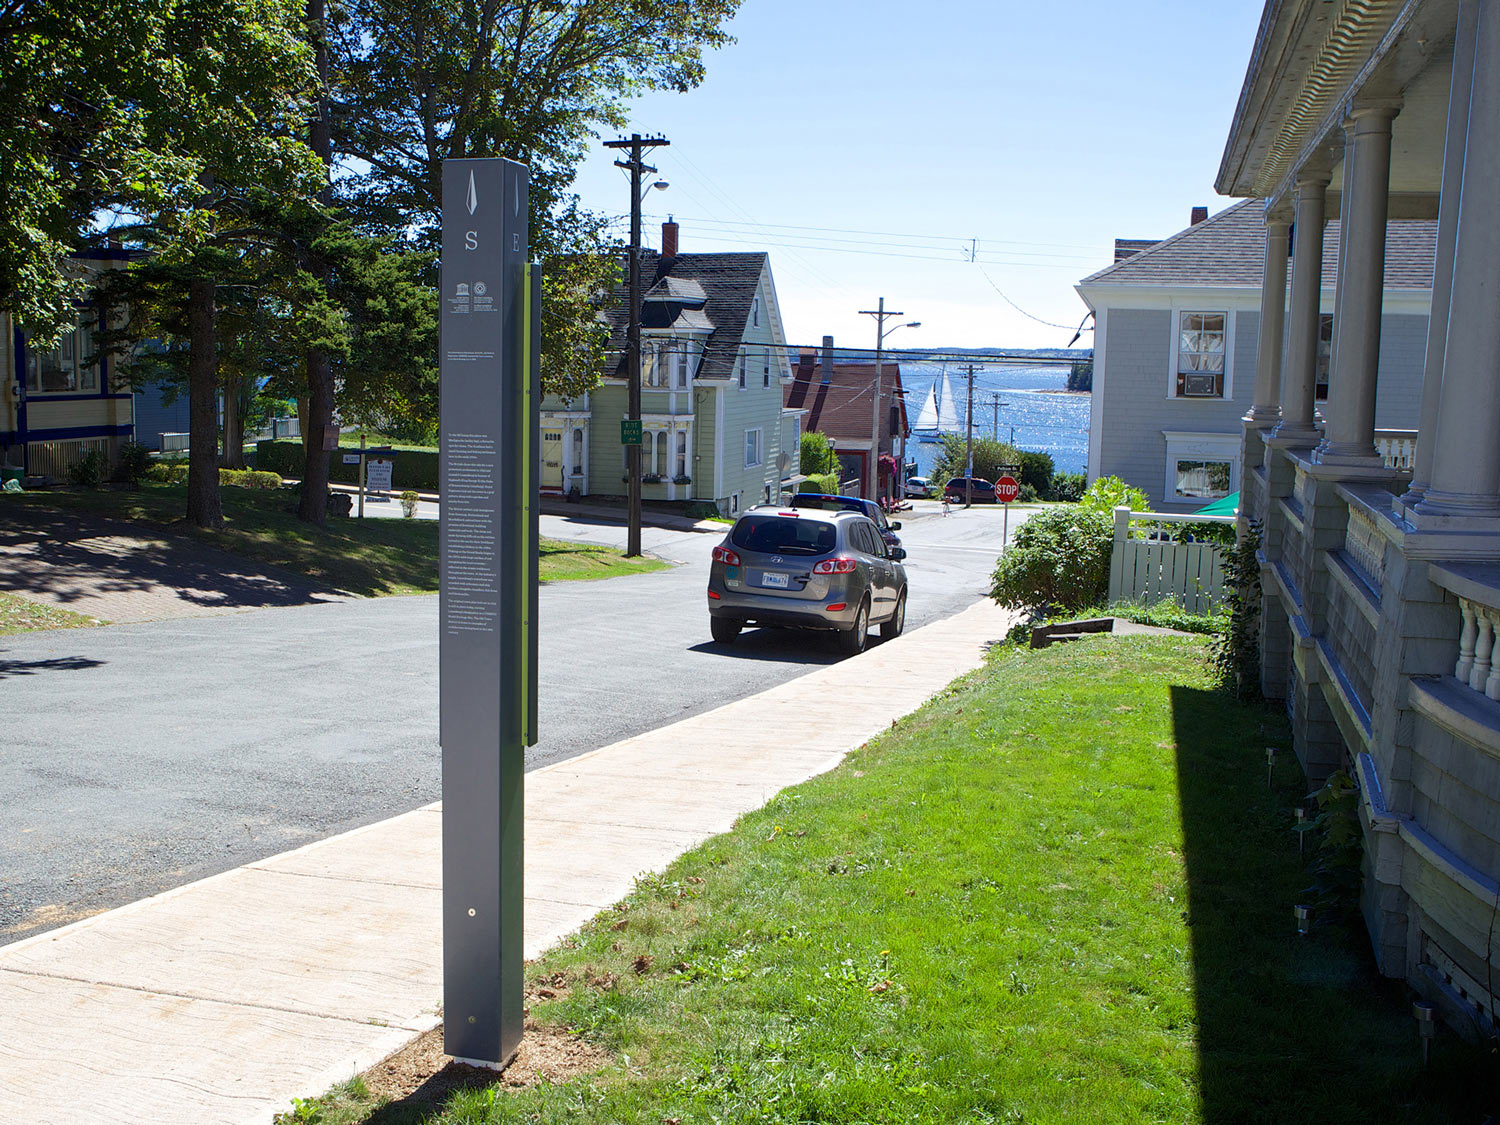 EXPLORE LUNENBURG The signage system promotes walking from the downtown core through to less explored residential areas